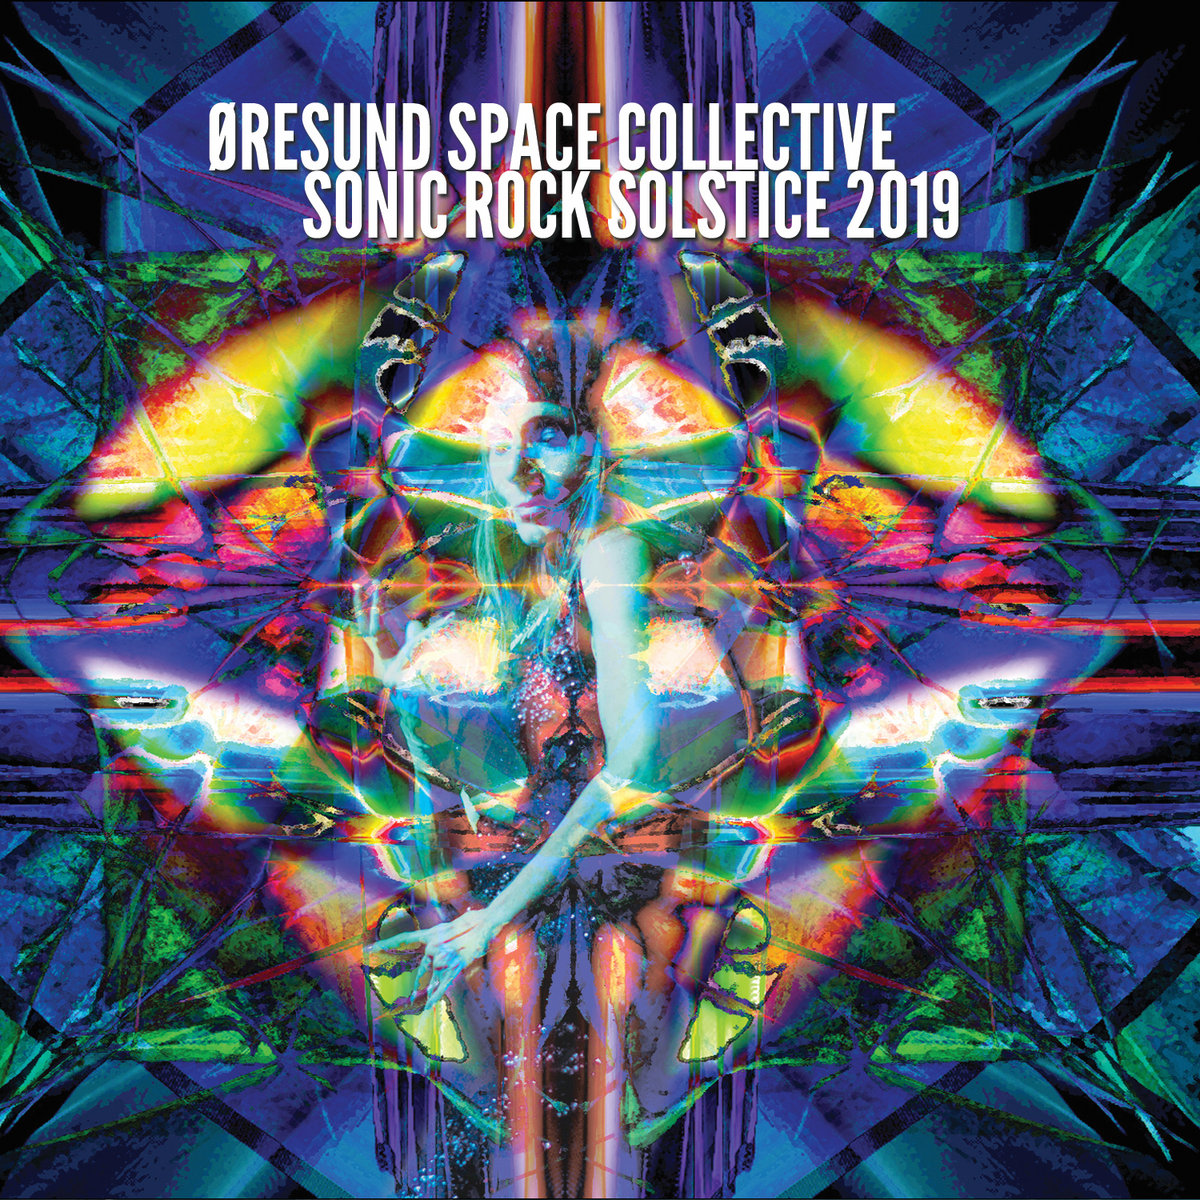 Øresund Space Collective Sonic Rock Solstice 2019